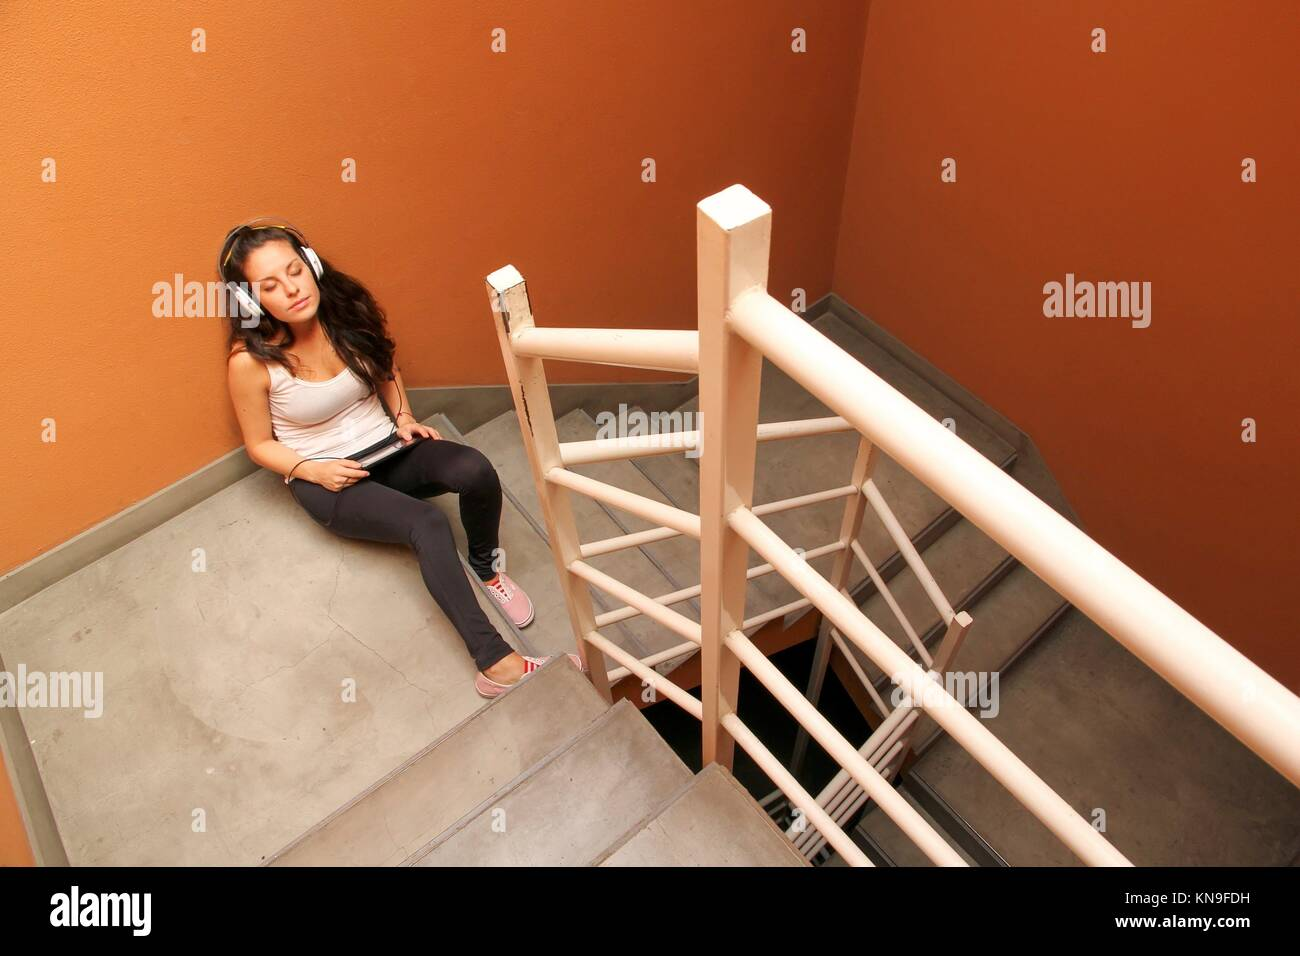 A young woman listening to melancholic Music sitting in the stairway. - Stock Image